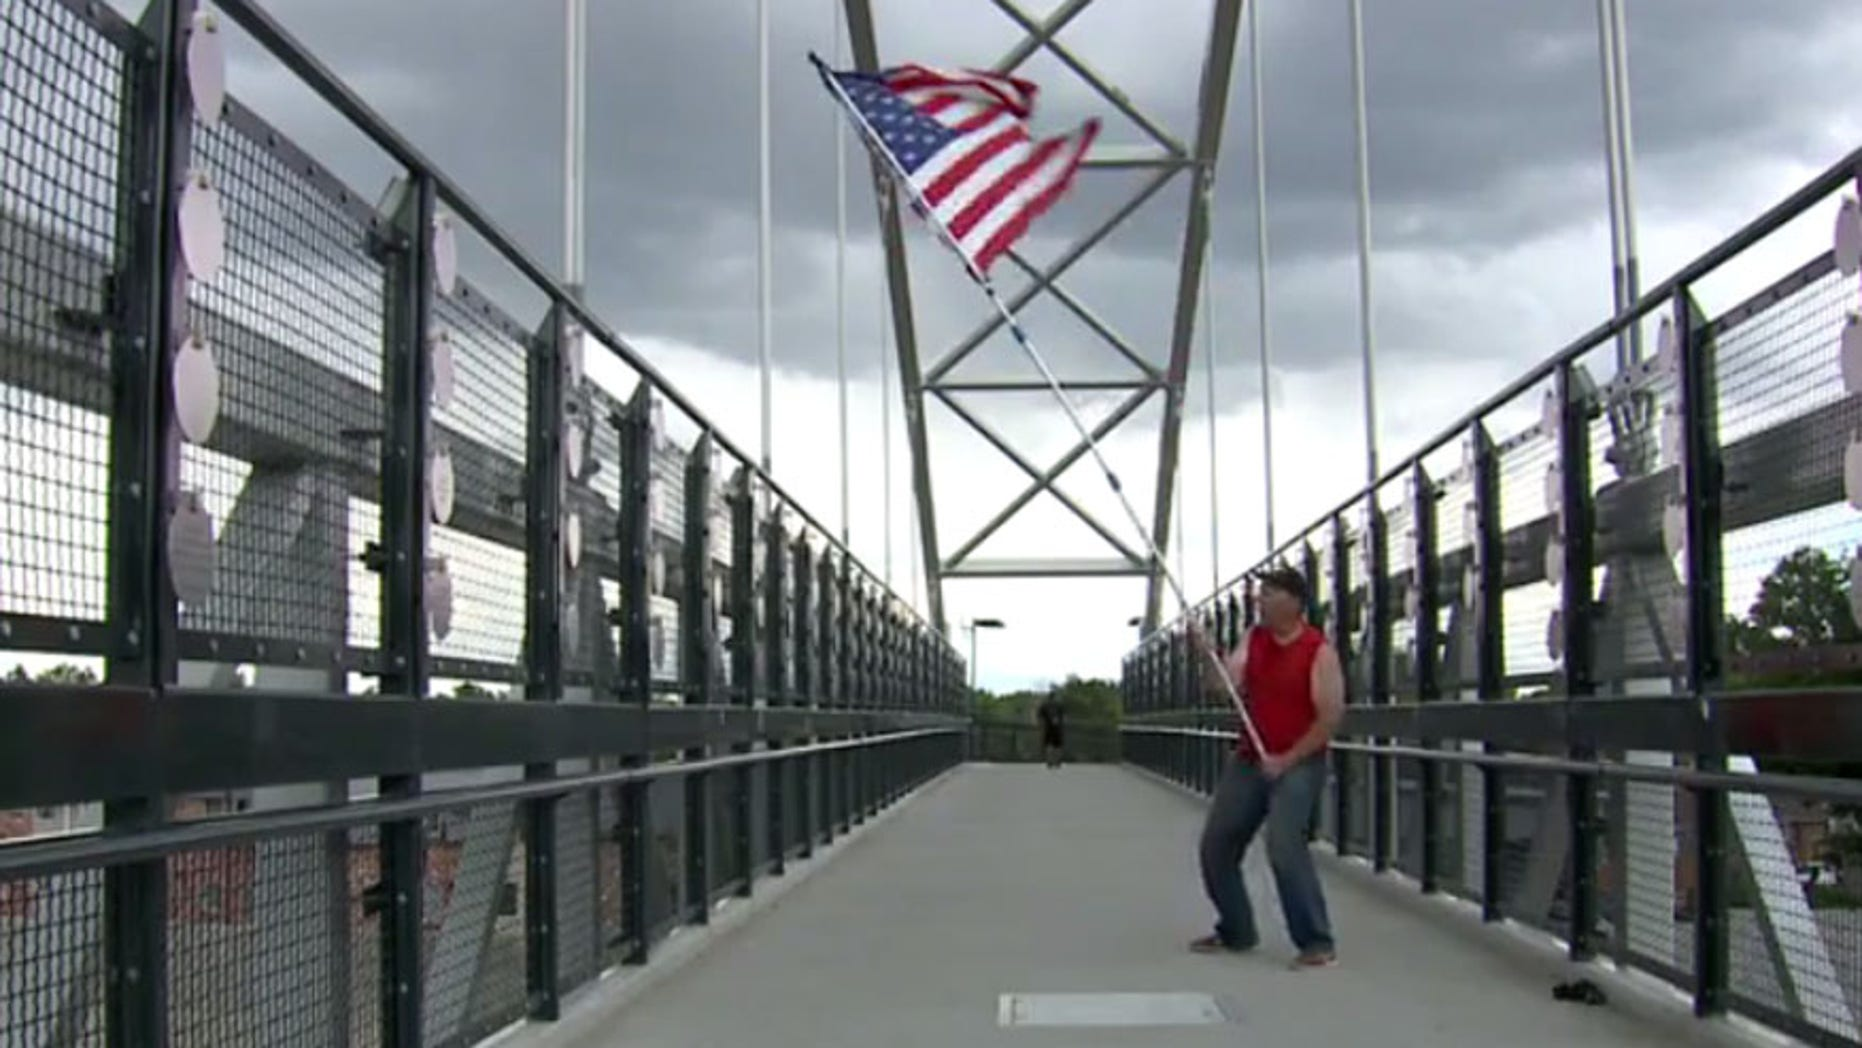 Memorial Day: Man spends 6 hours waving American flag over